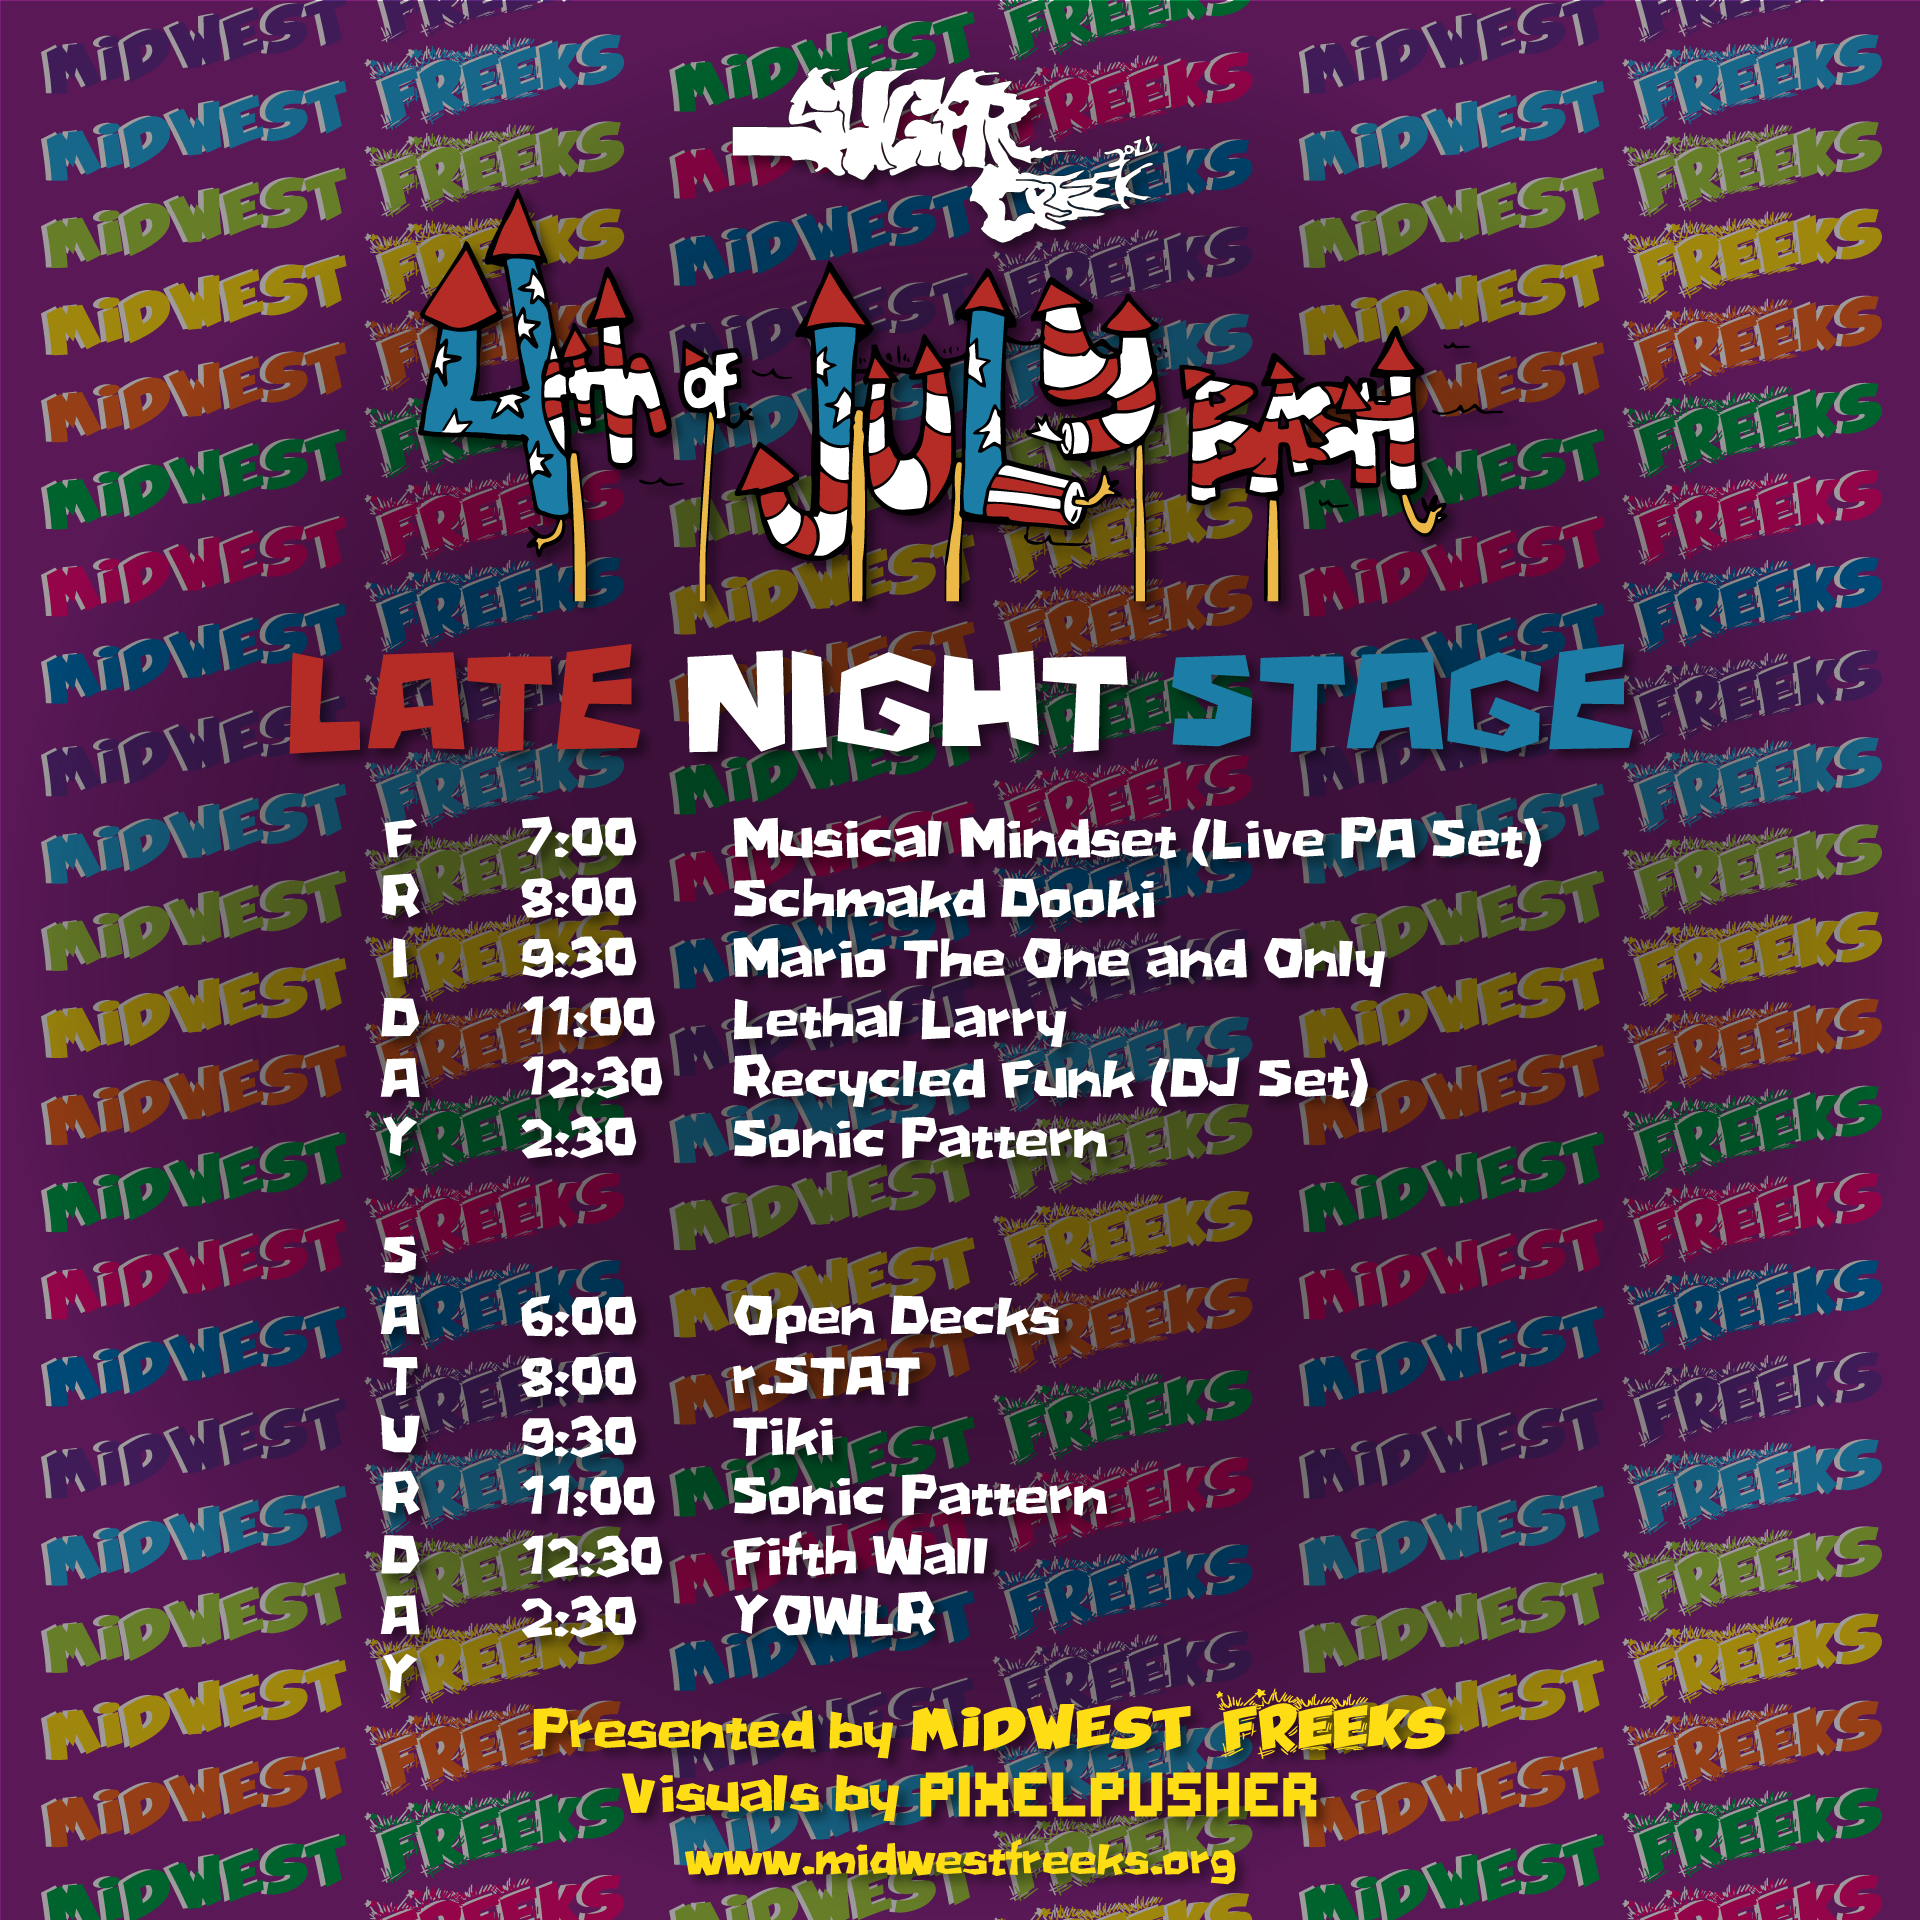 Midwest Freeks Late Night Stage Schedule